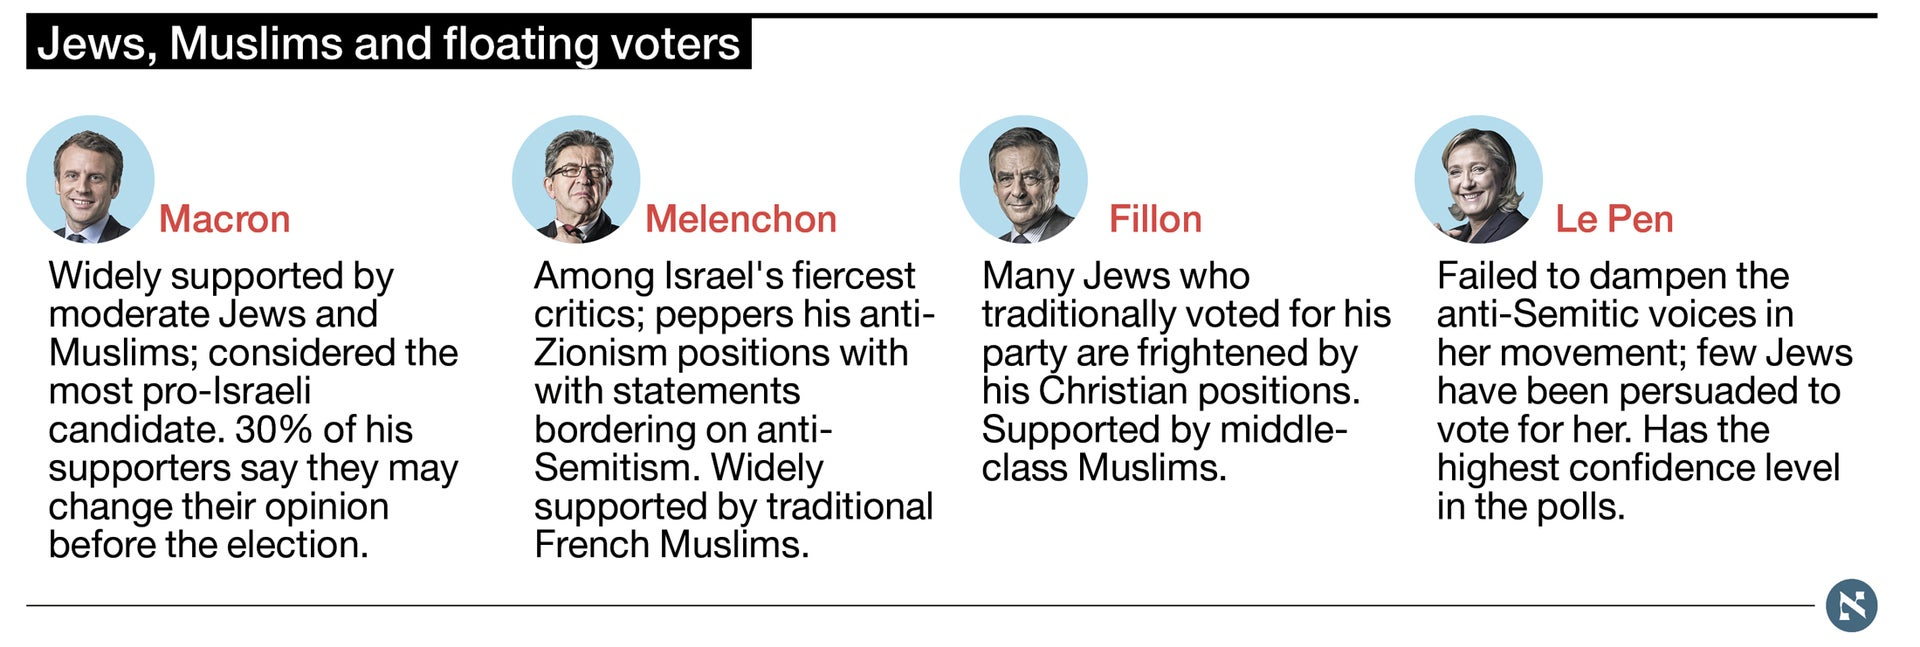 Jews, Muslims and floating voters